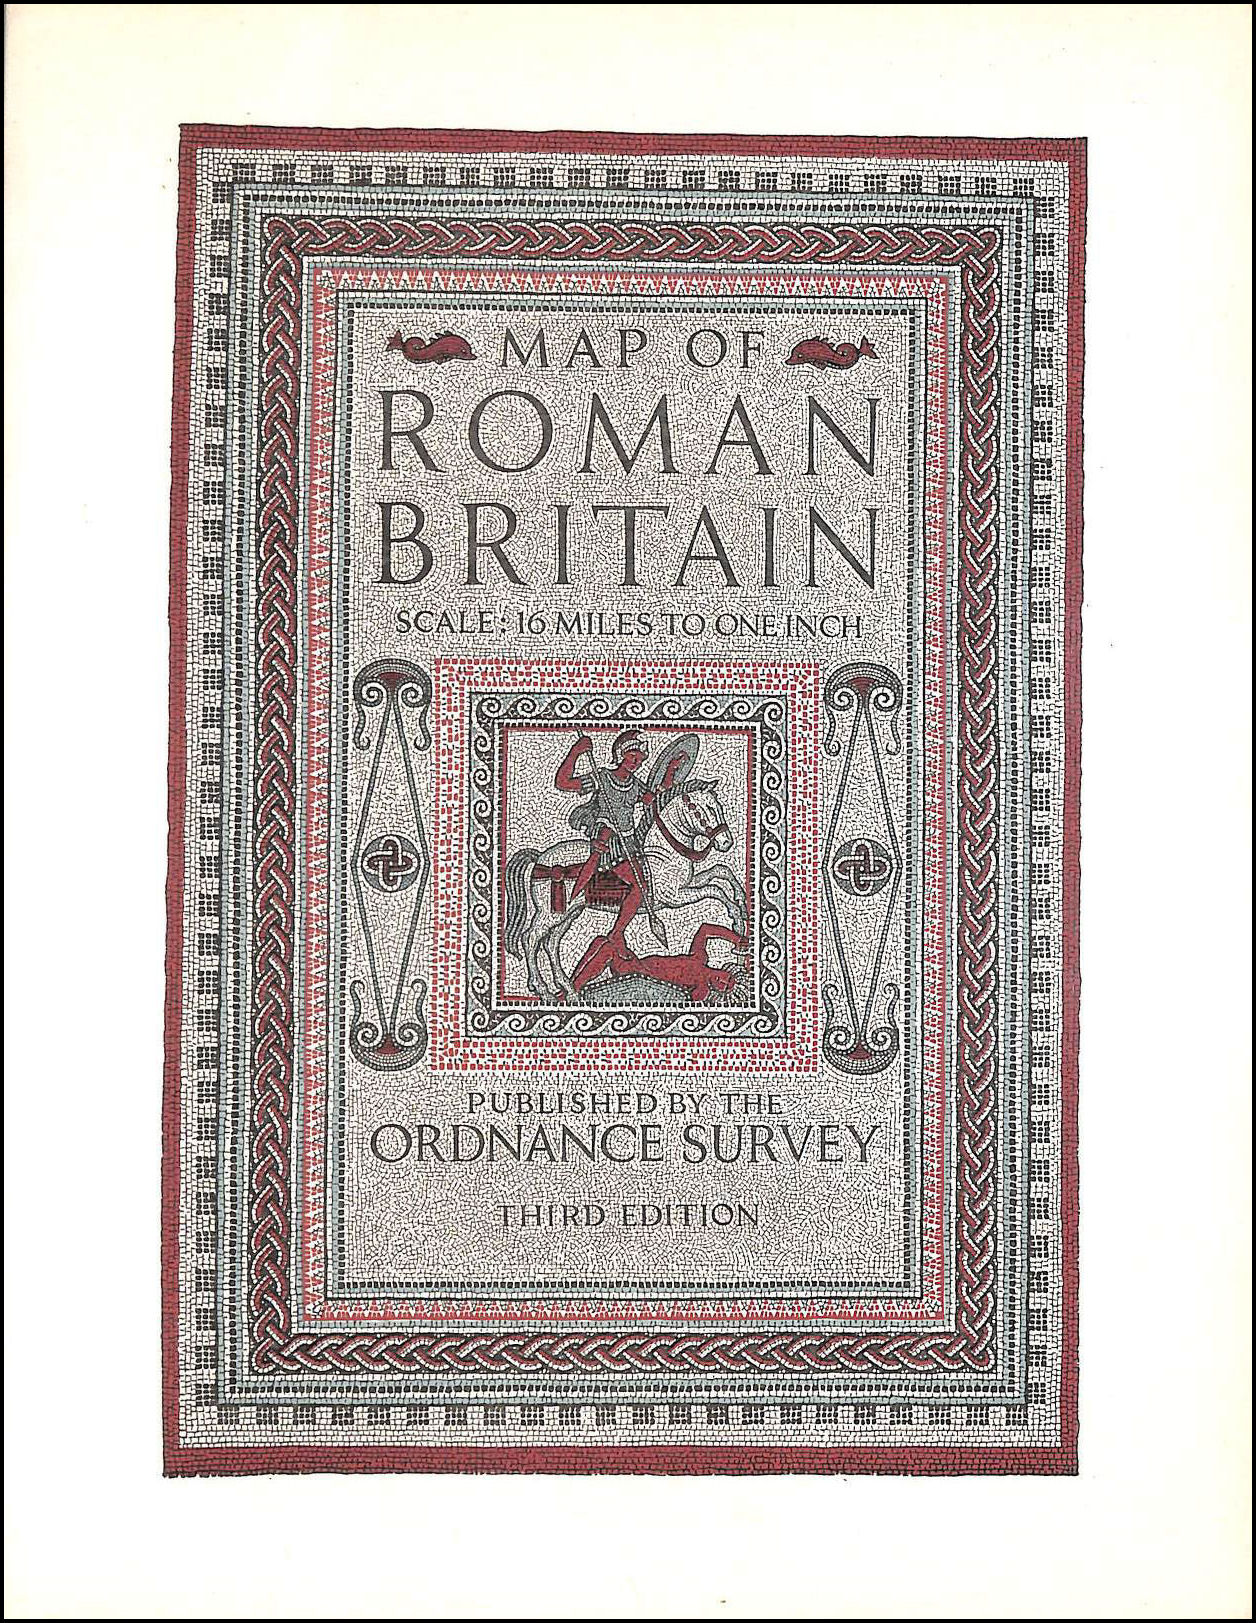 Map of Roman Britain: scale: 16 miles to one inch, No author.